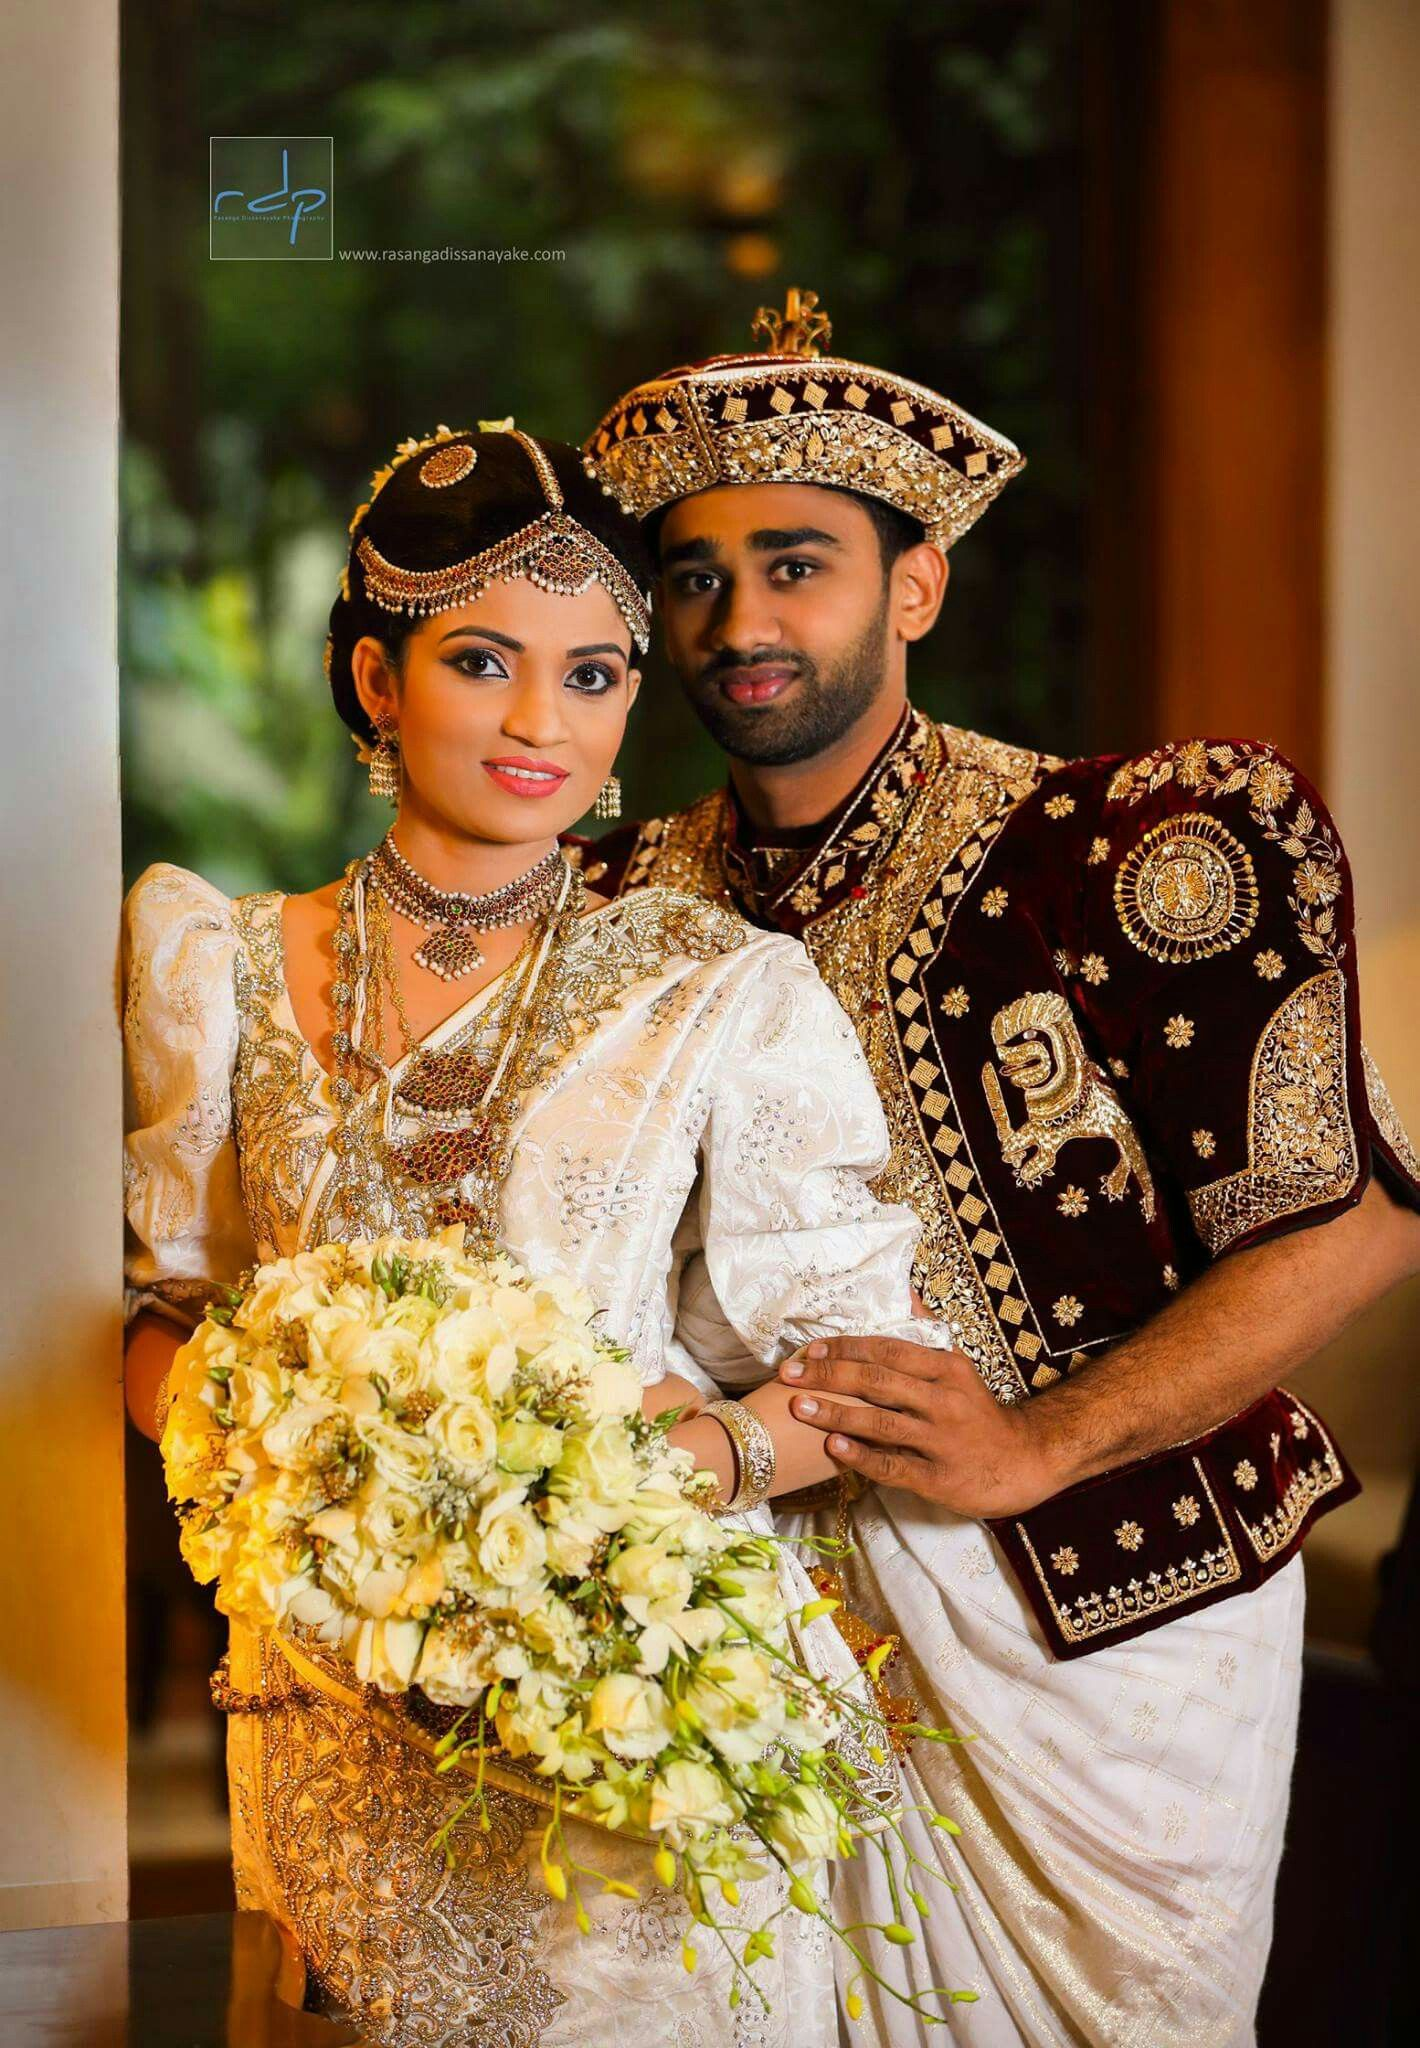 Beautyful kandyan bride 2017 Bride, Sri lankan wedding